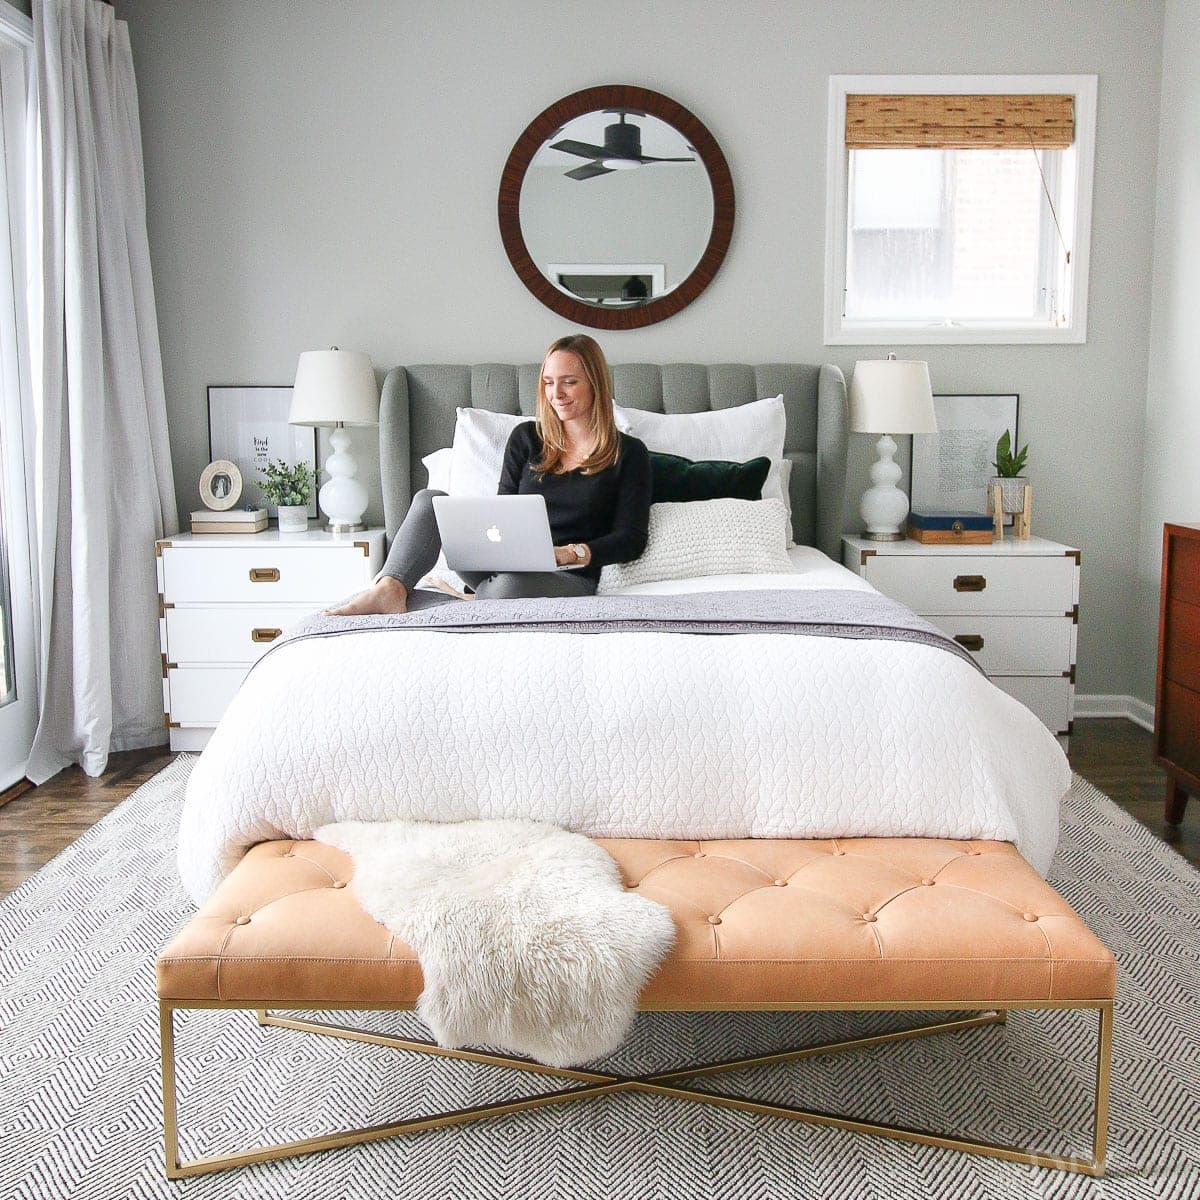 The sierra ivory paddle rug works in this gray bedroom.